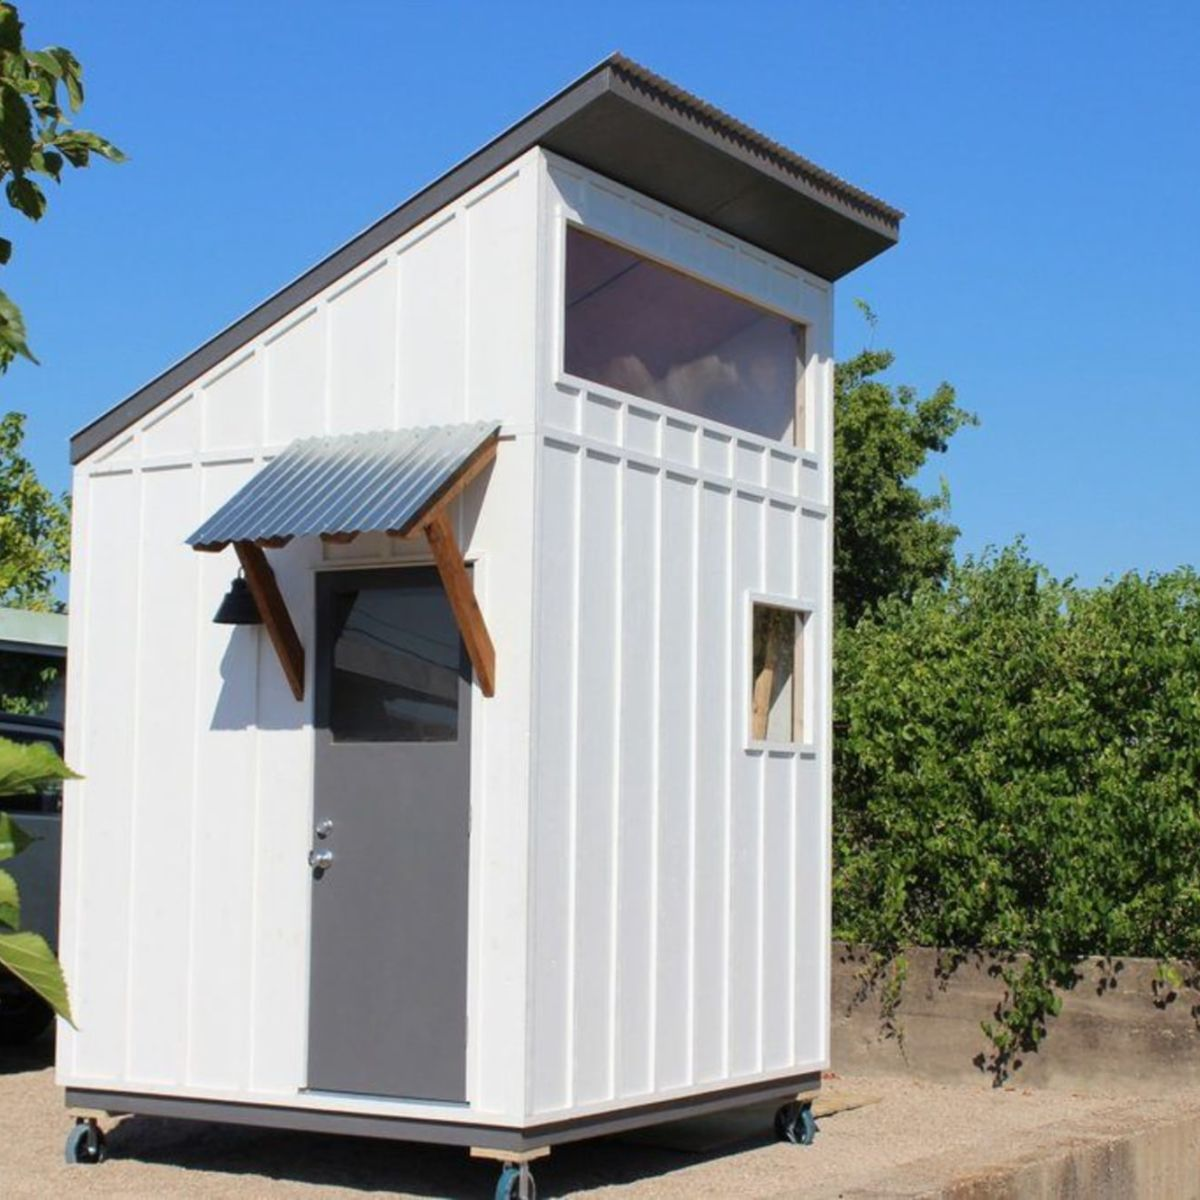 112 sf tiny home only 7 500 tiny house for sale in brunswick tiny house listings